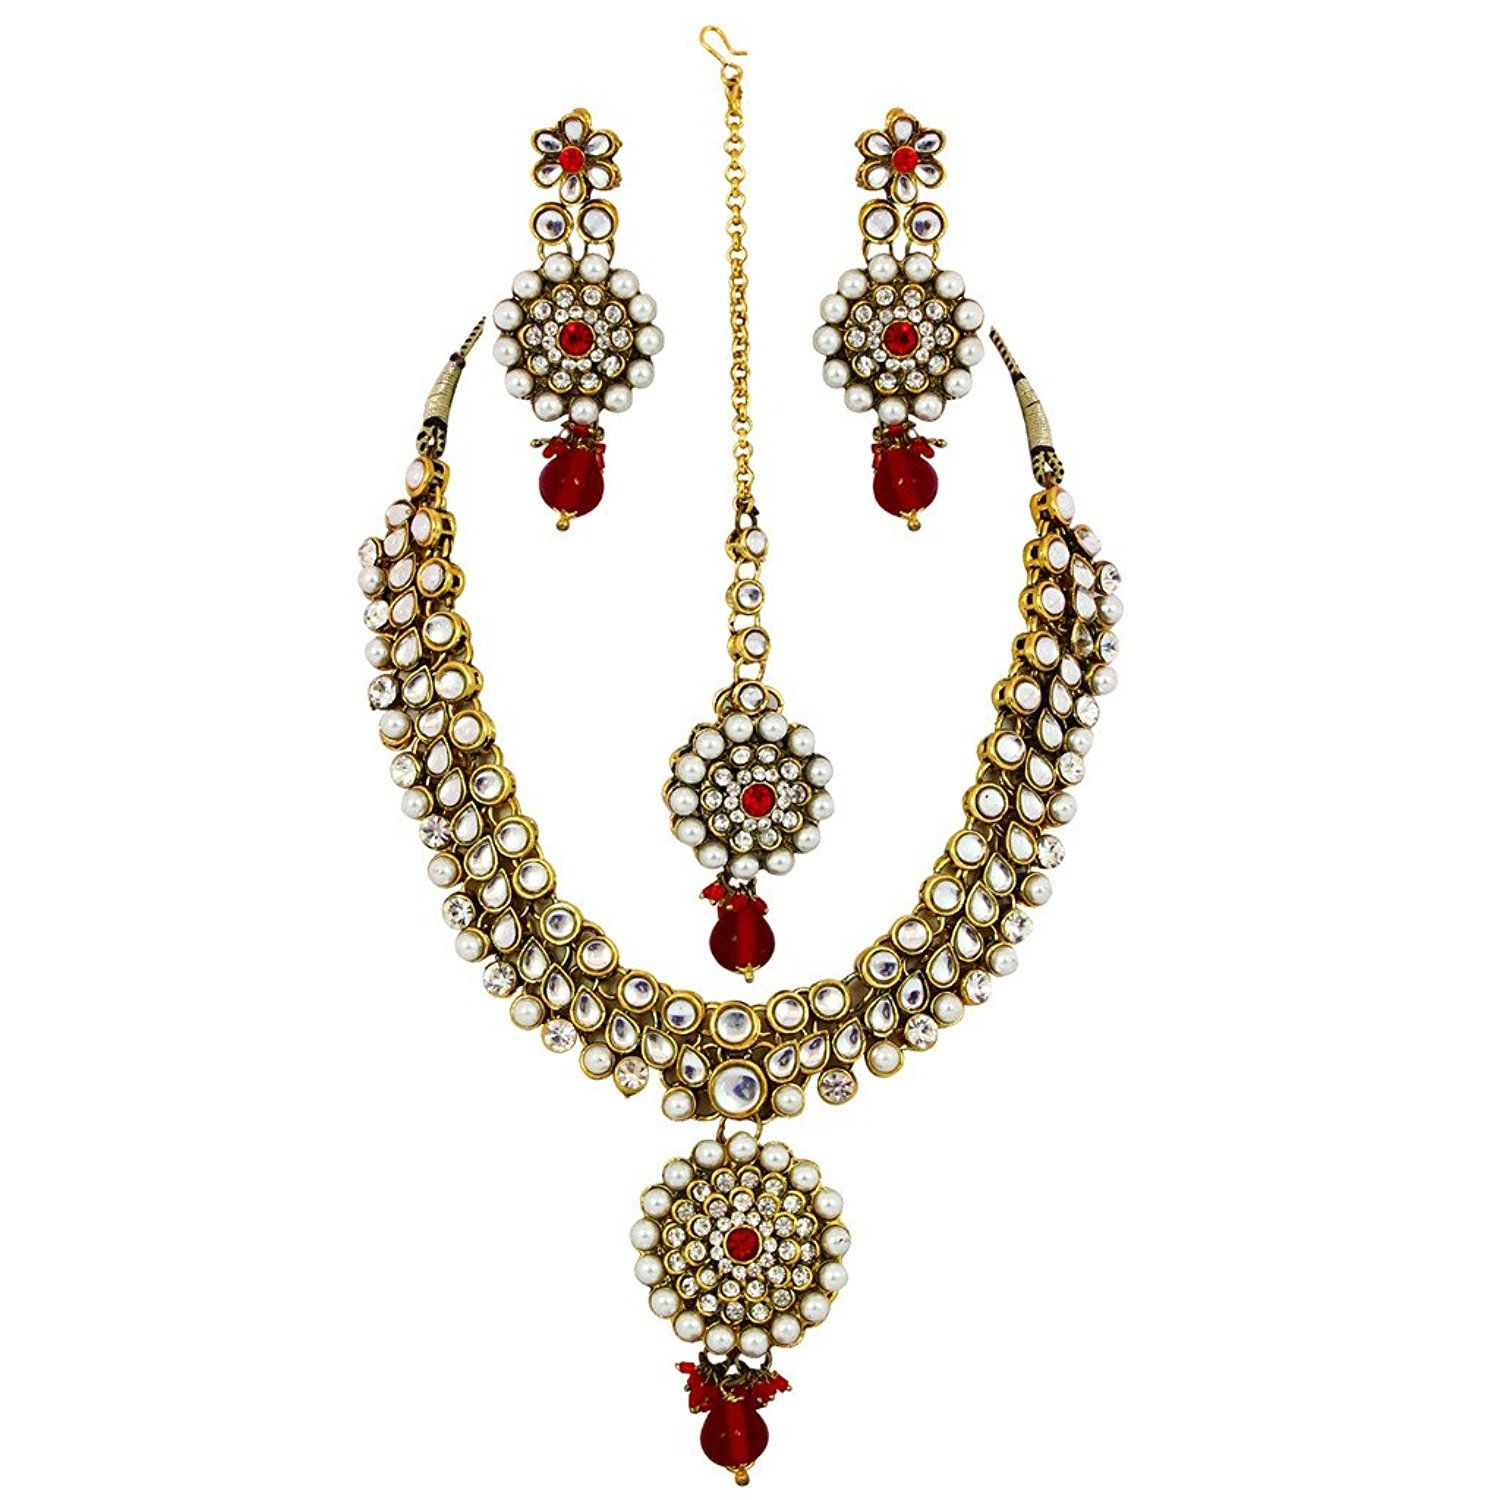 Jewelshingar jewellery coloured zircon necklace set for women